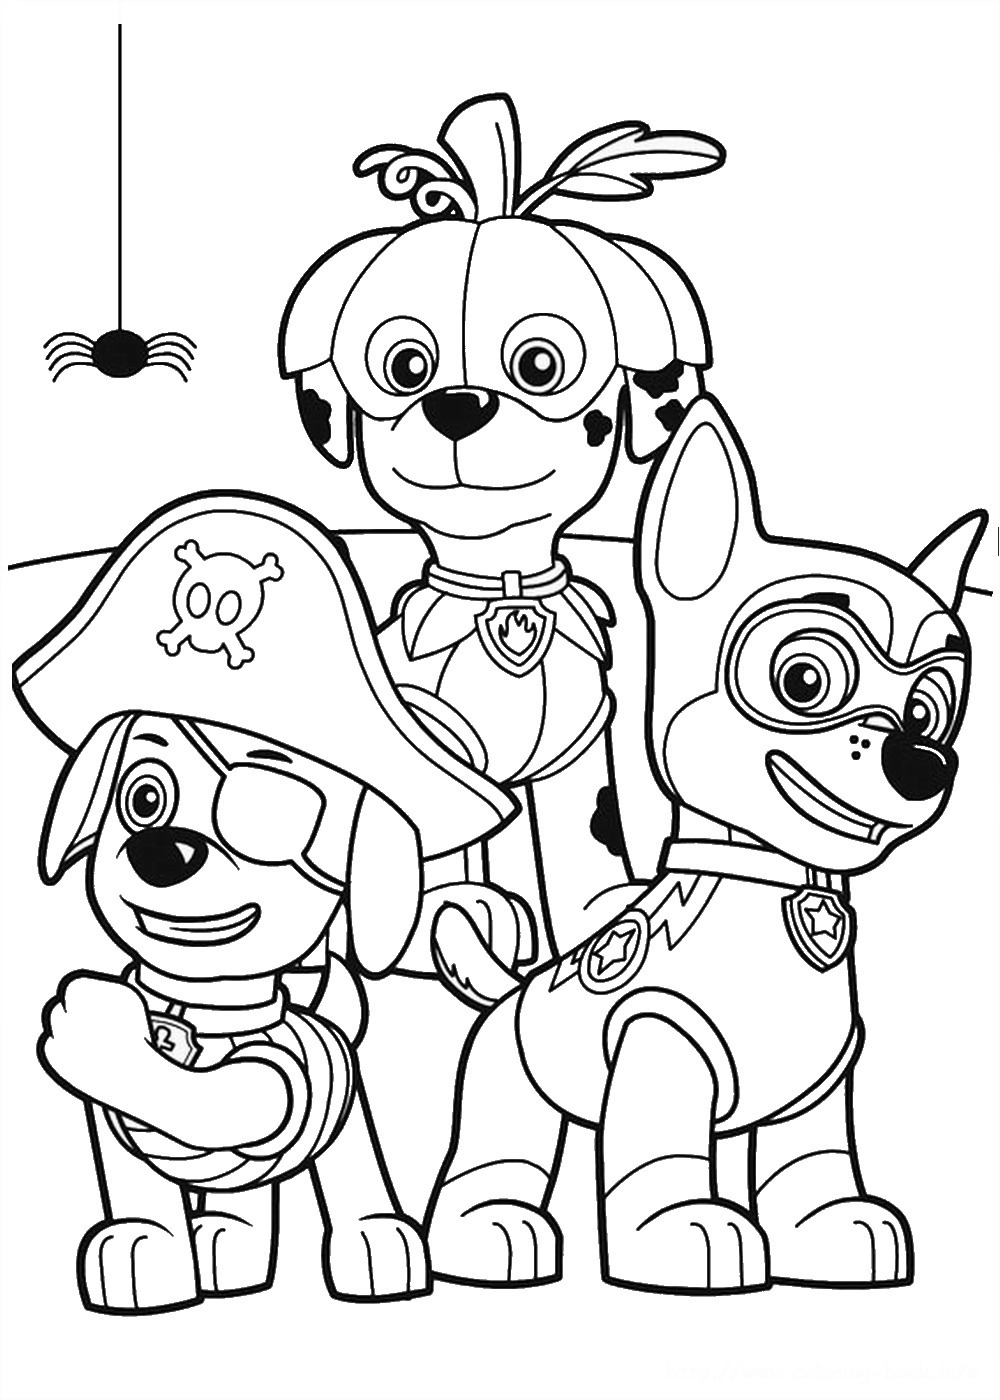 nickelodeon coloring pages - photo#6